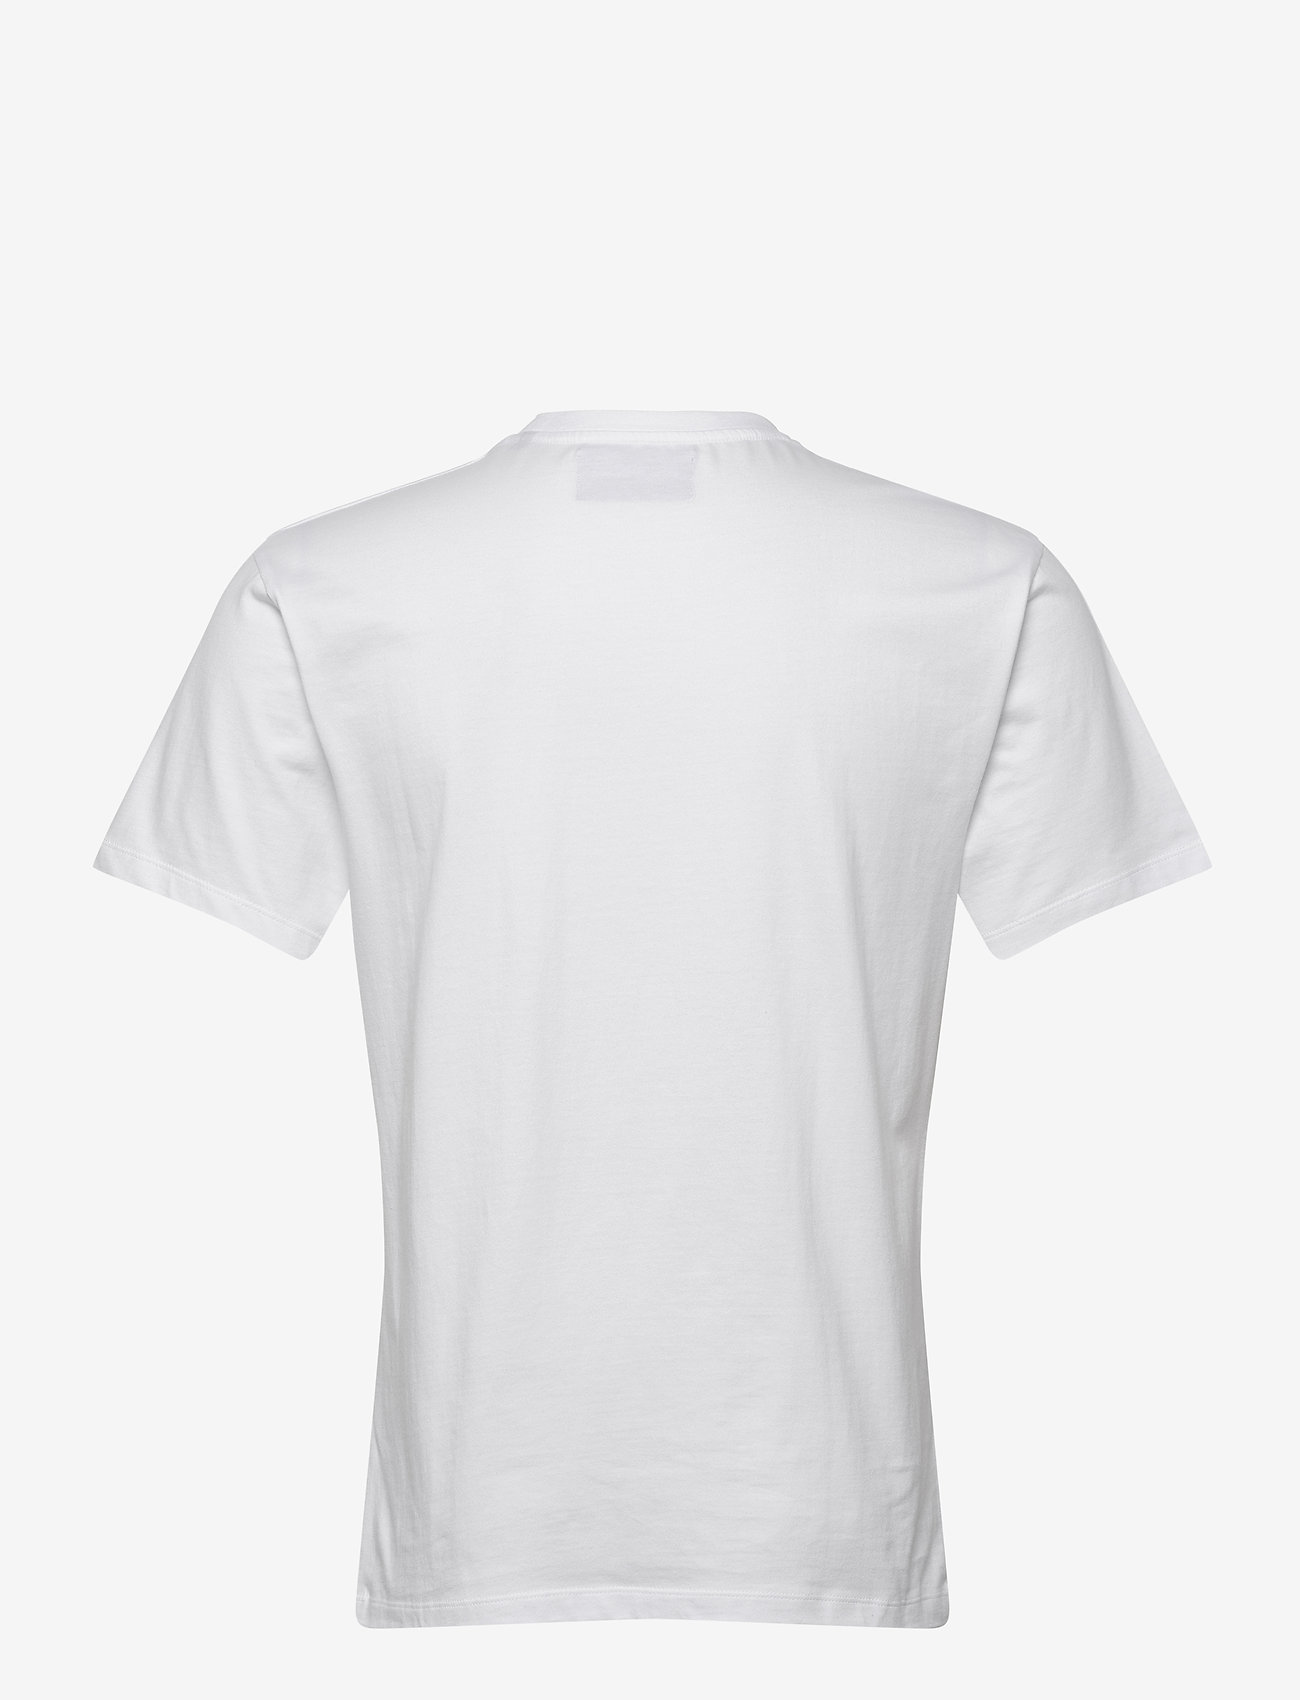 T-shirt (White) - The Kooples 7eeNY2